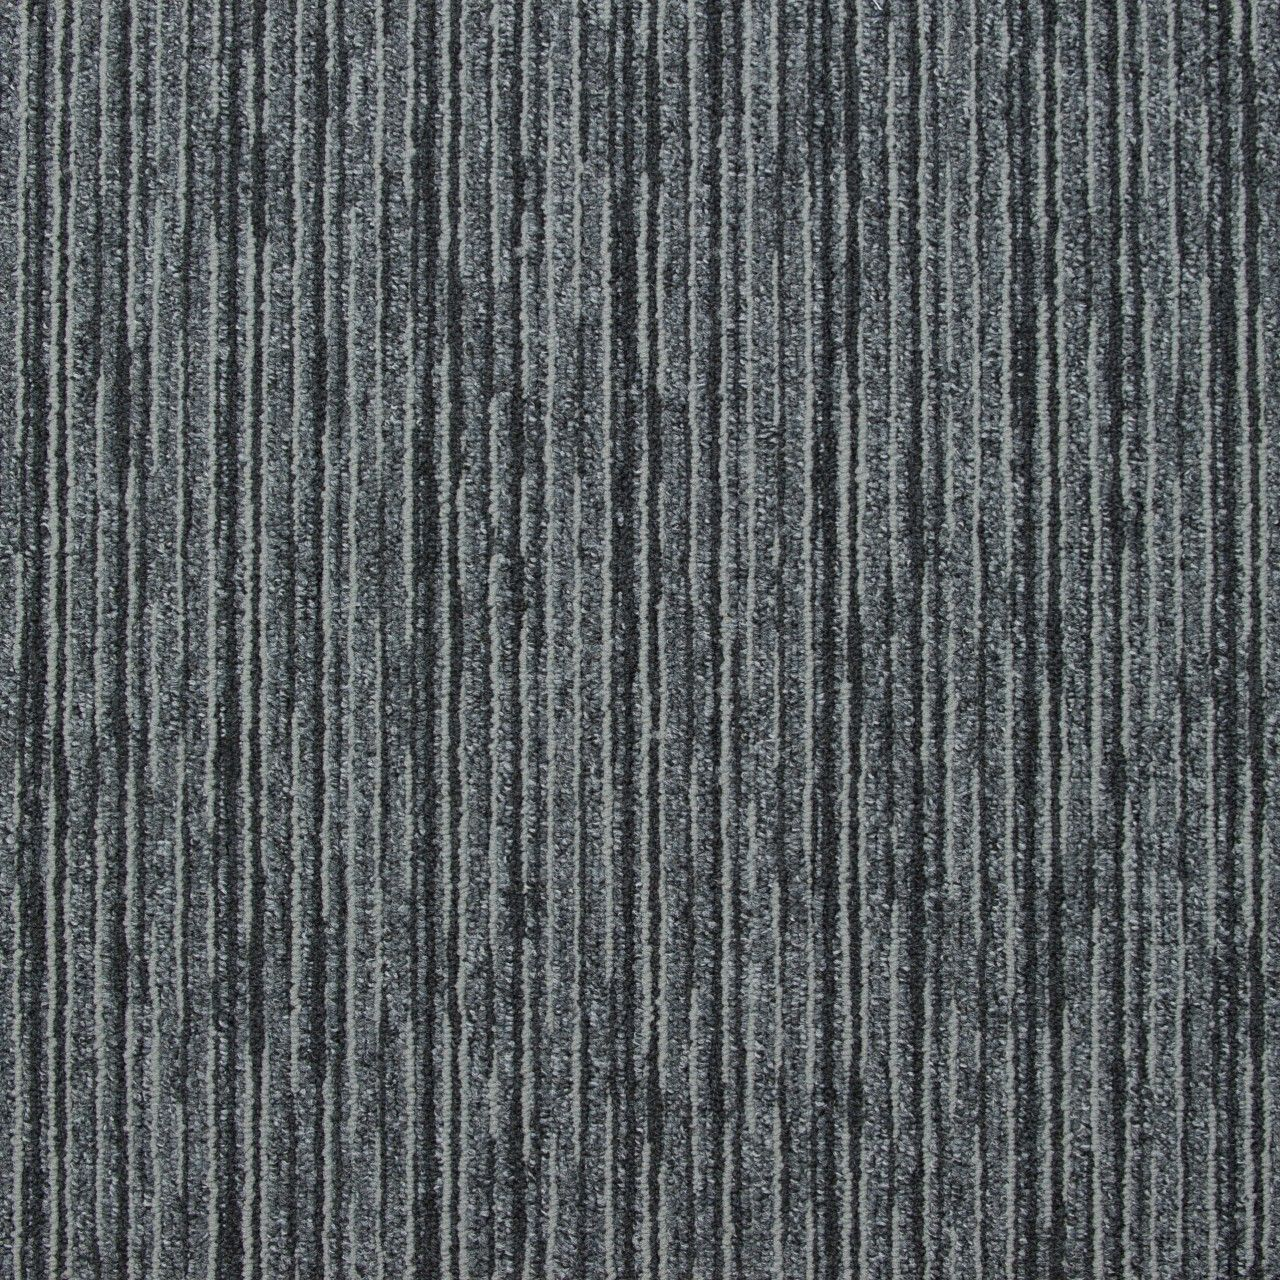 Seamless Office Carpet Texture Google Search